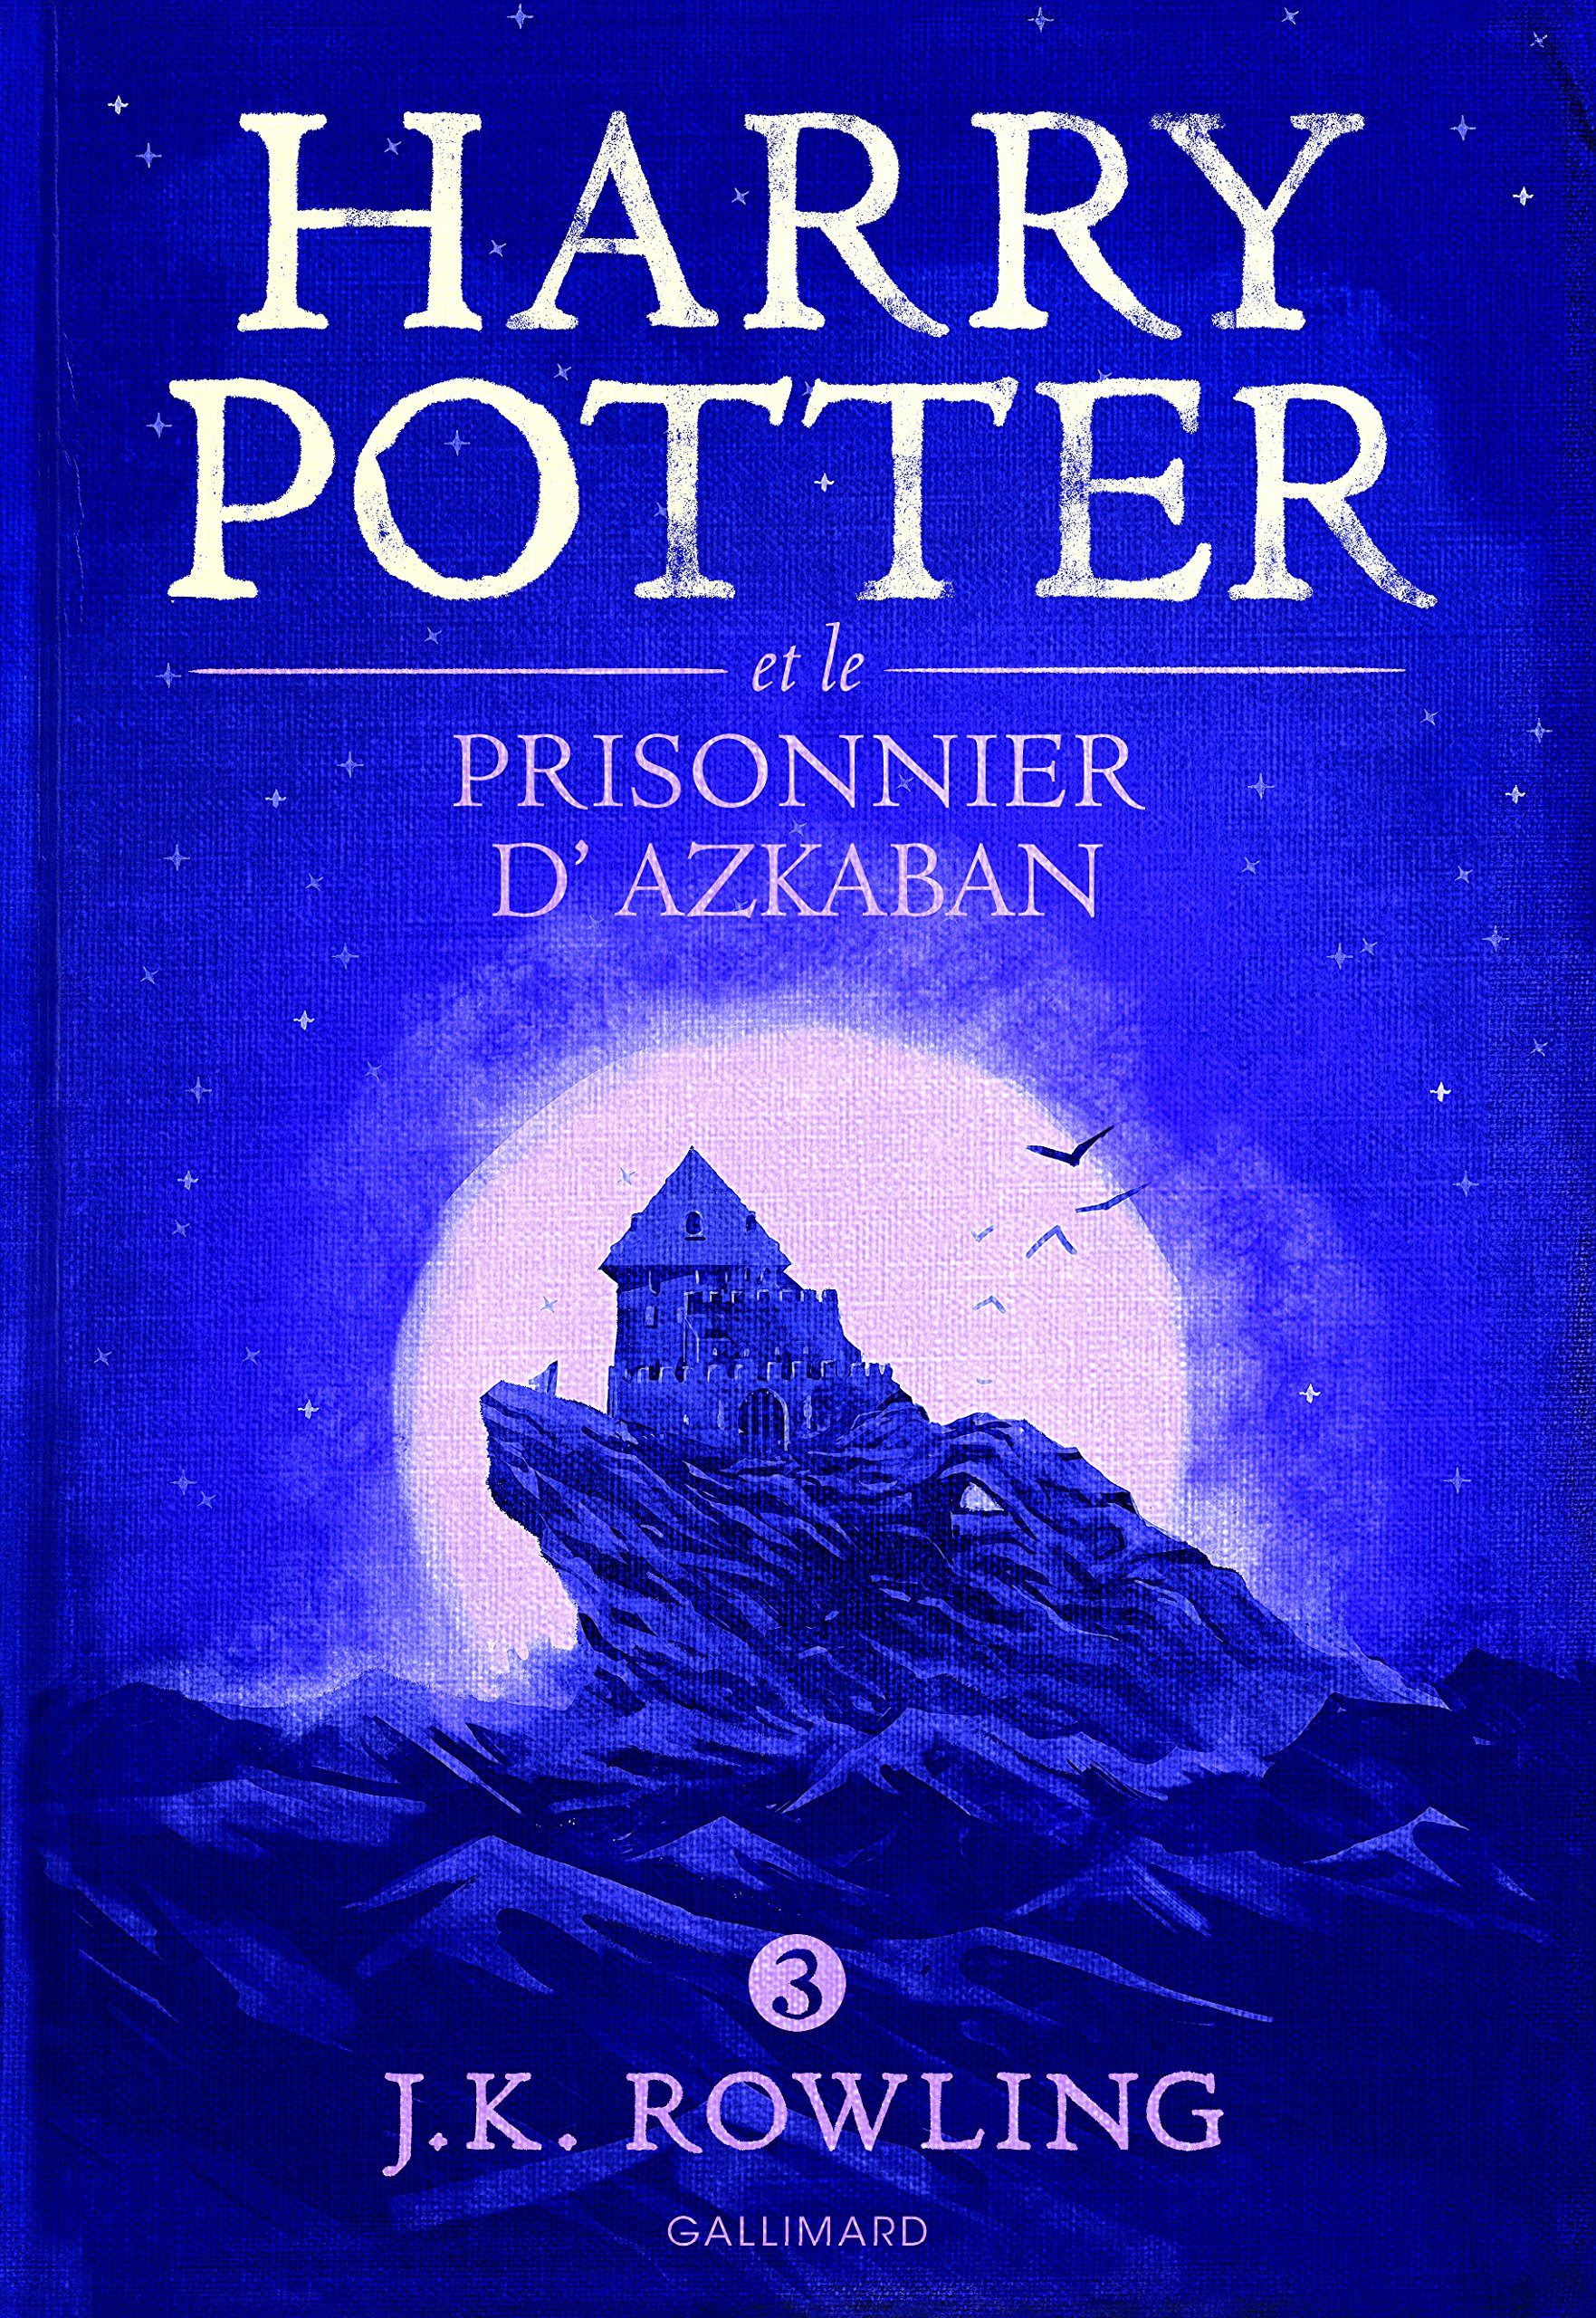 Harry Potter-3-Harry Potter Et Le Prisonnier D'azkaban